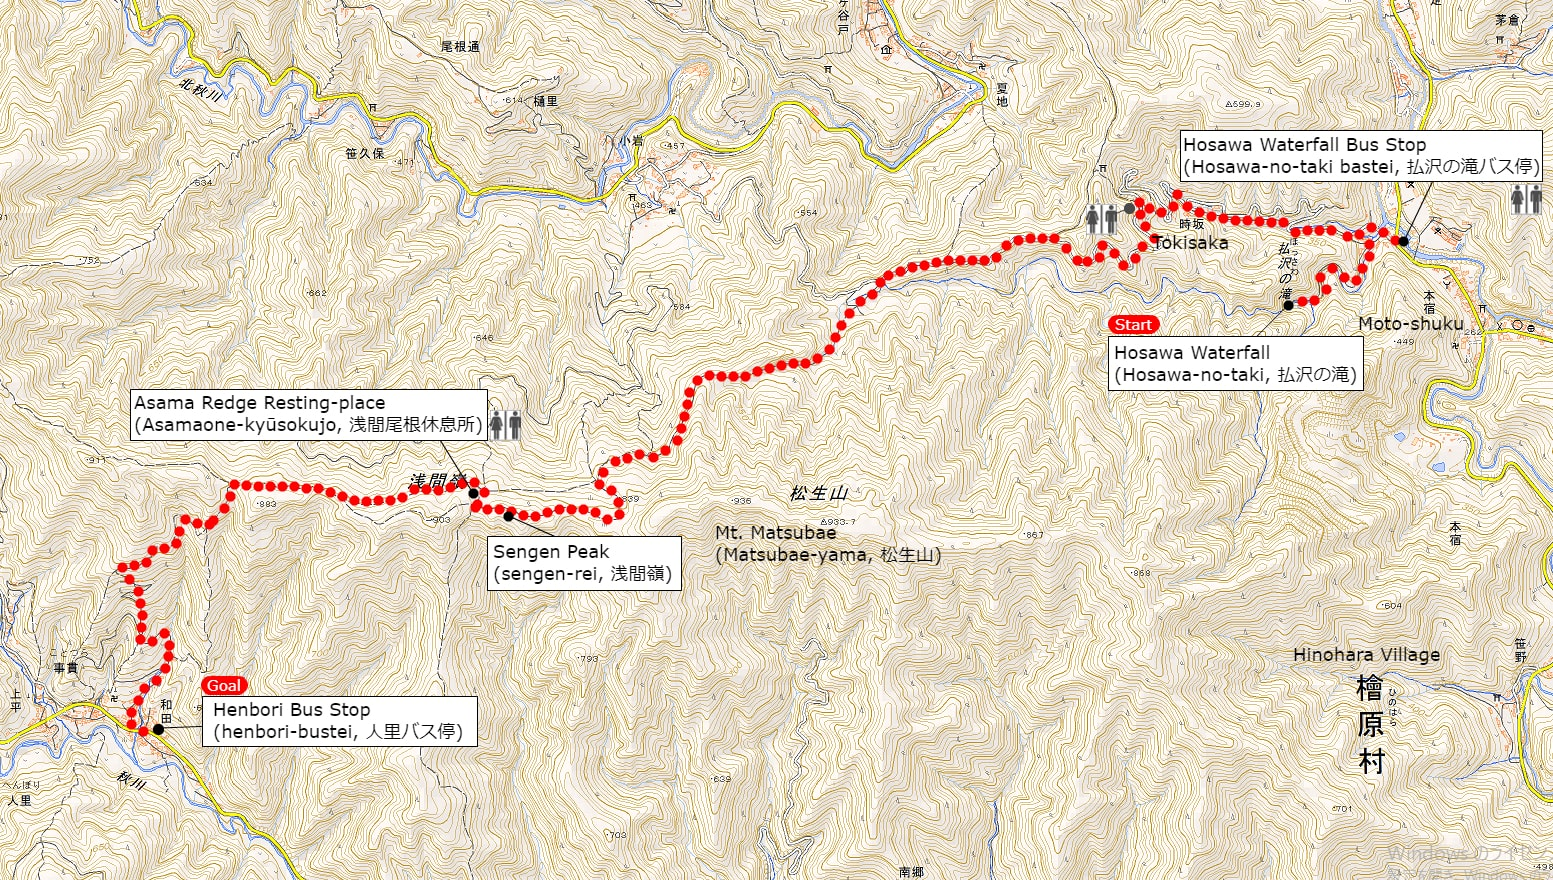 A Map of Sengen Ridge Hiking Course | Click on the image above to open the enlarged image in a separate tab.